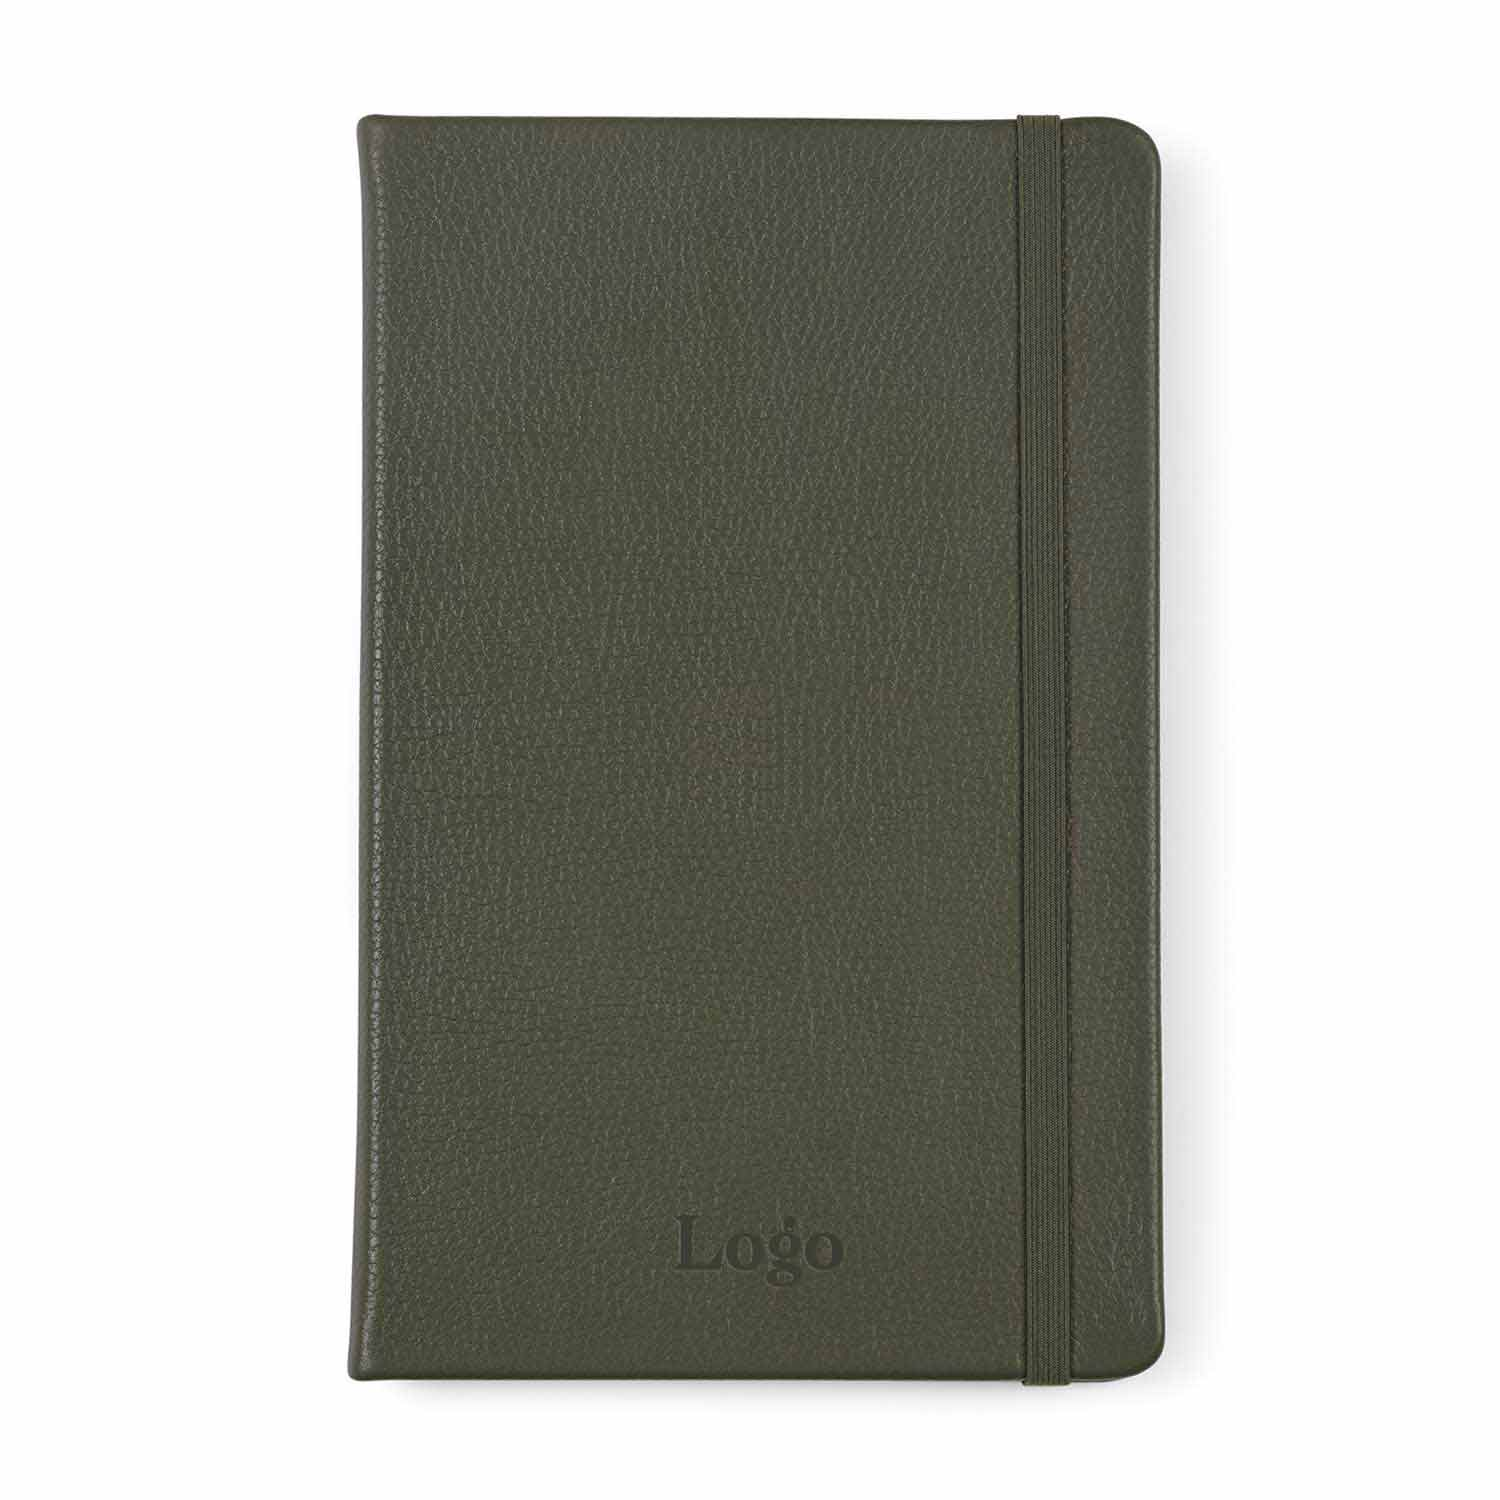 199976 leather ruled large notebook one location blind deboss